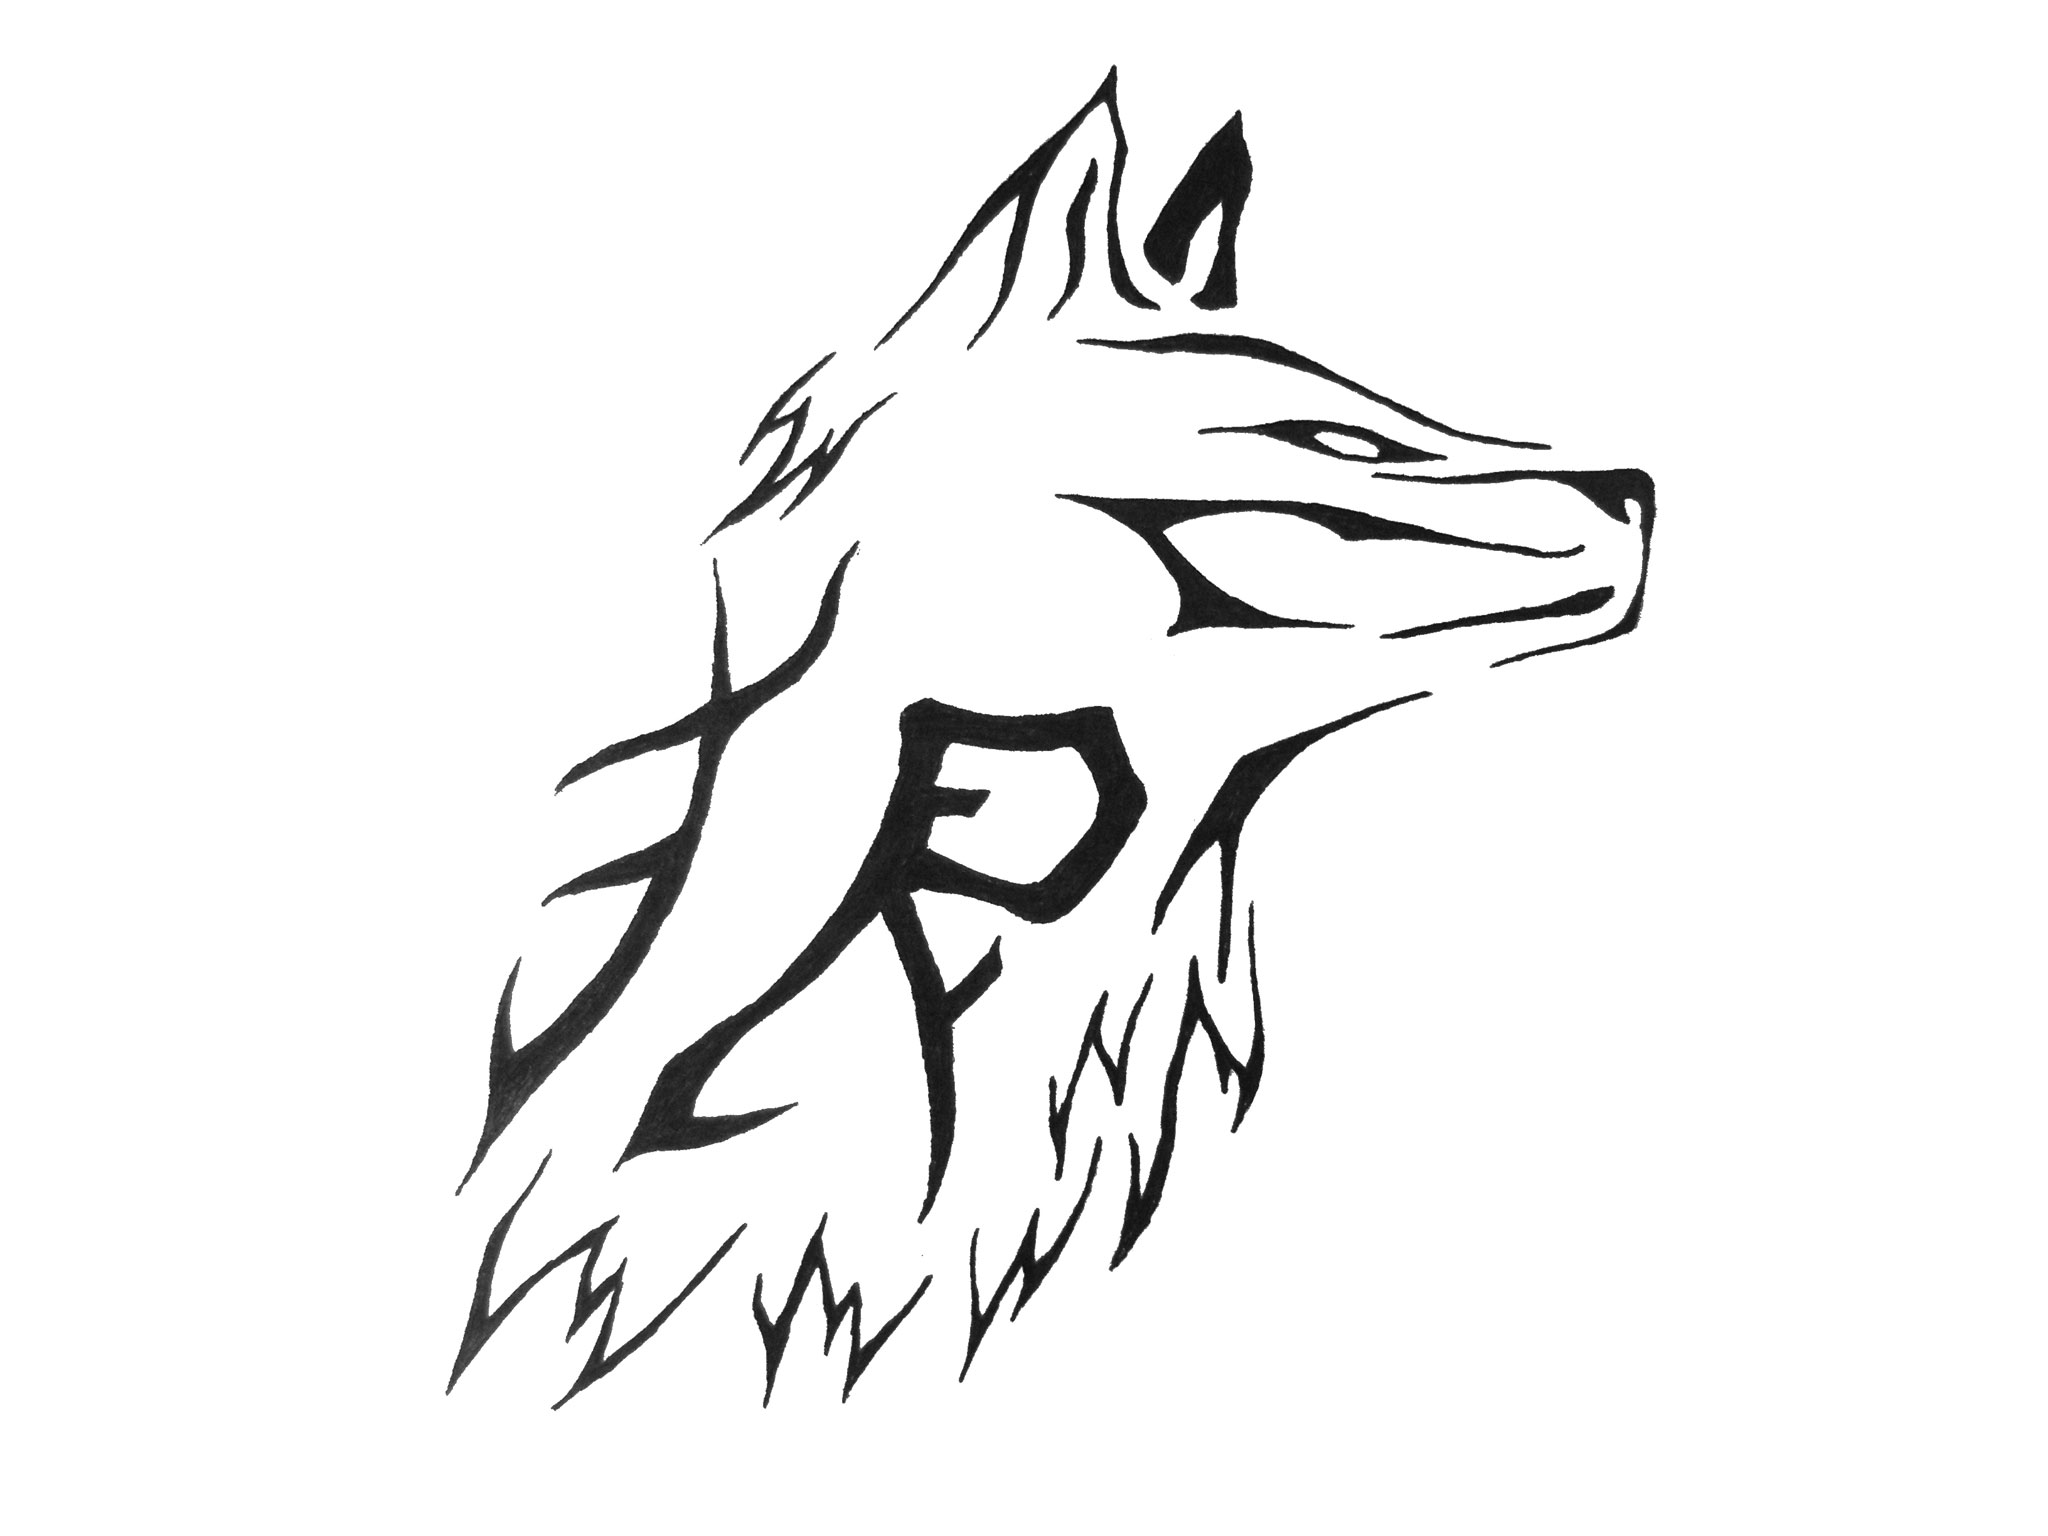 Simple wolf design - photo#4